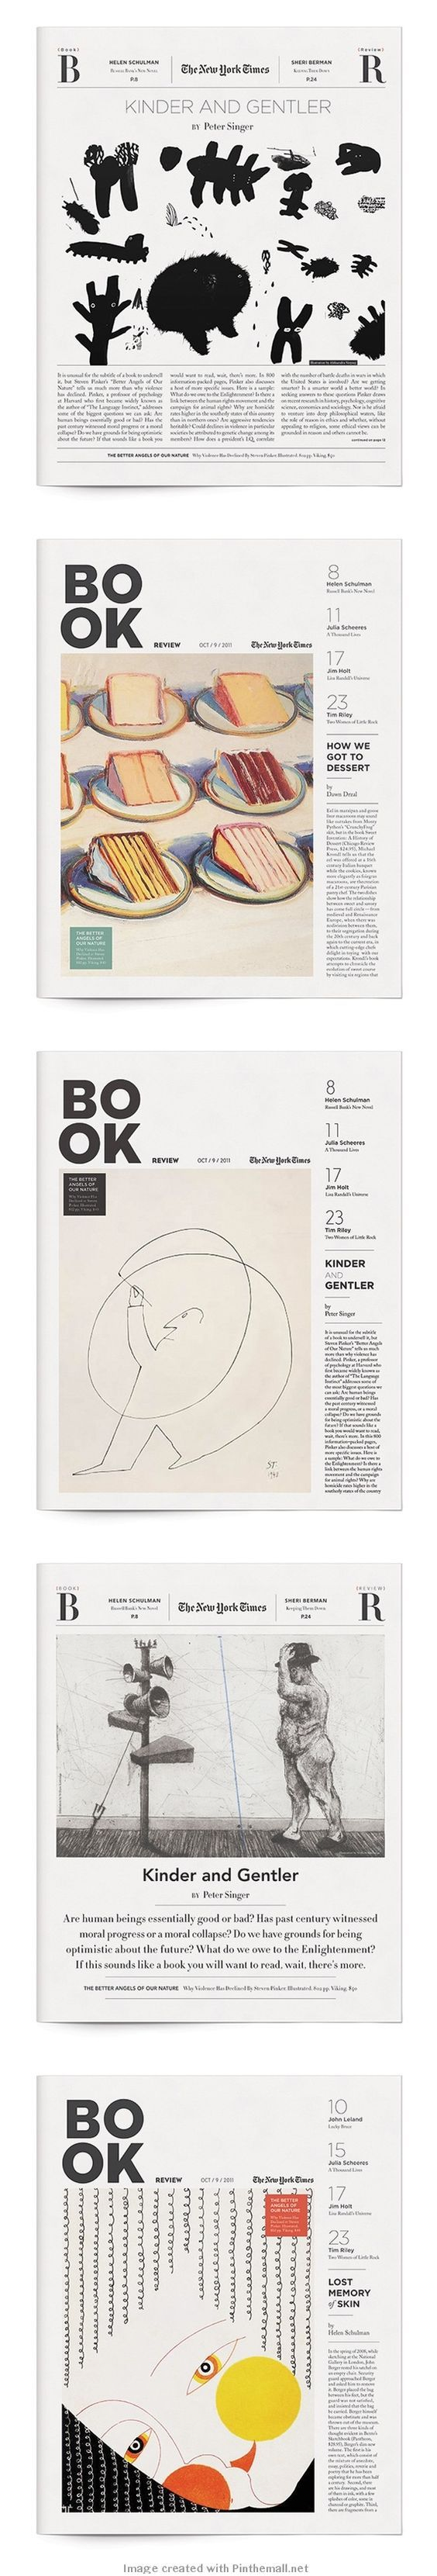 New York Times Book Review | Annie Yi-Chieh Jen | Graphis: